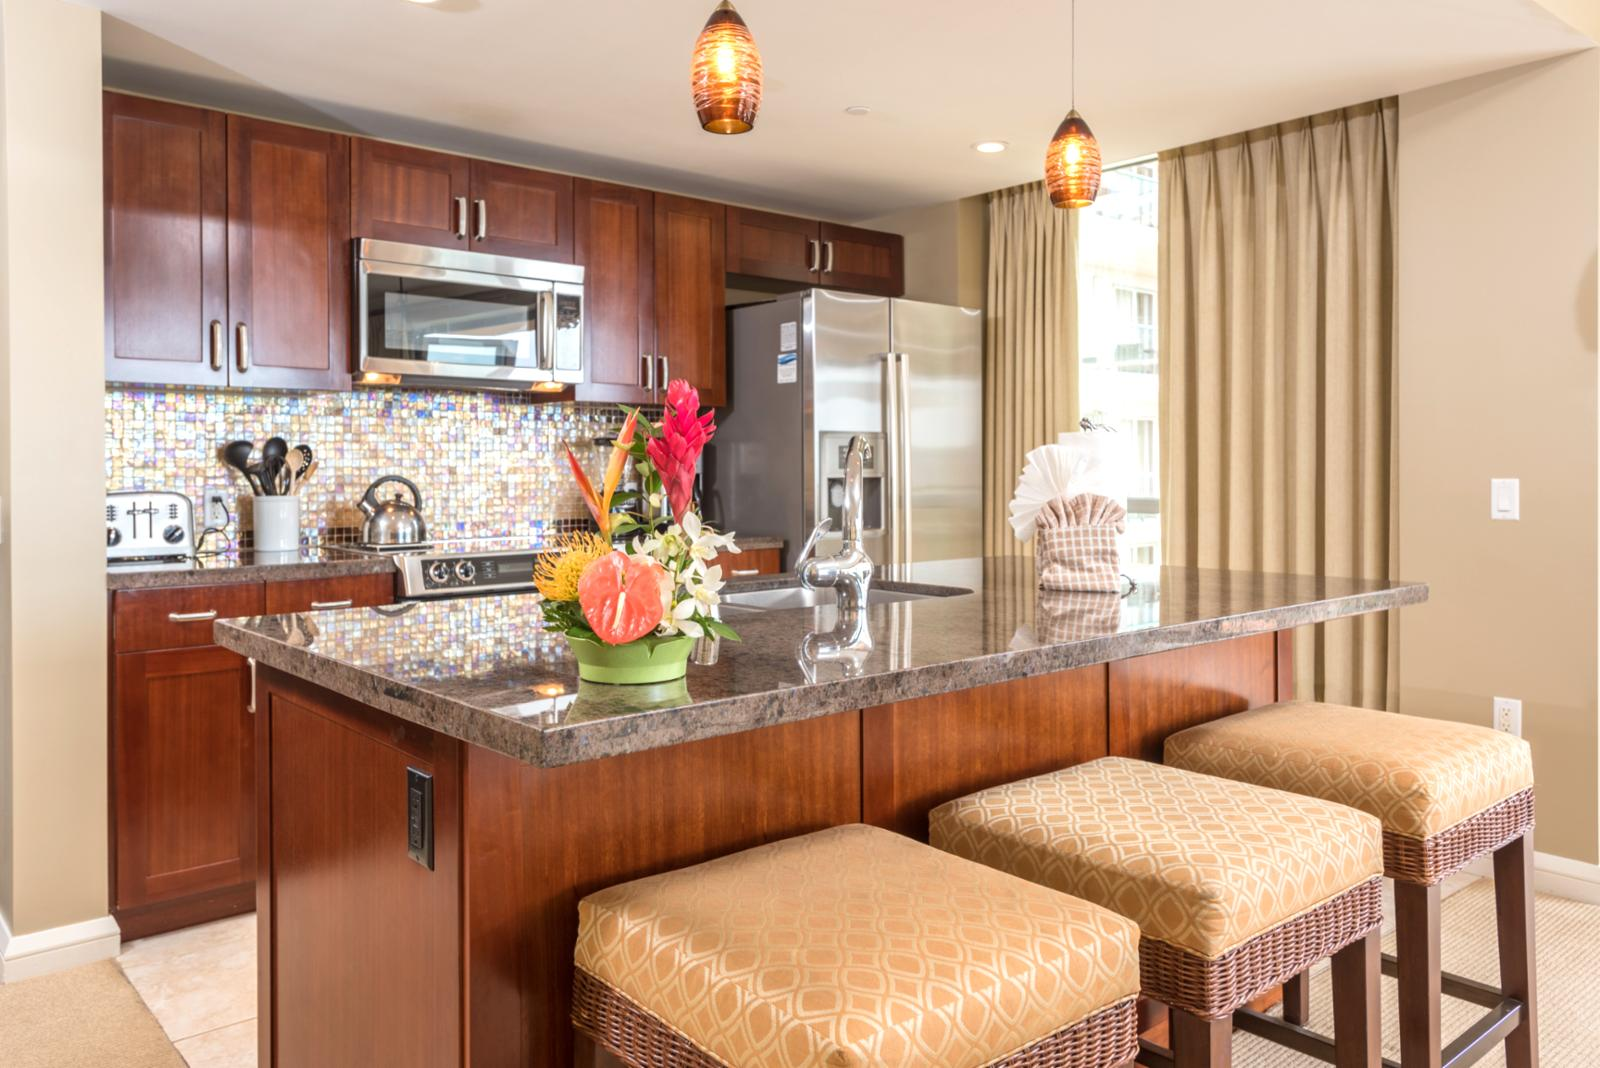 Breakfast bar seating for (3) with crisp ocean views